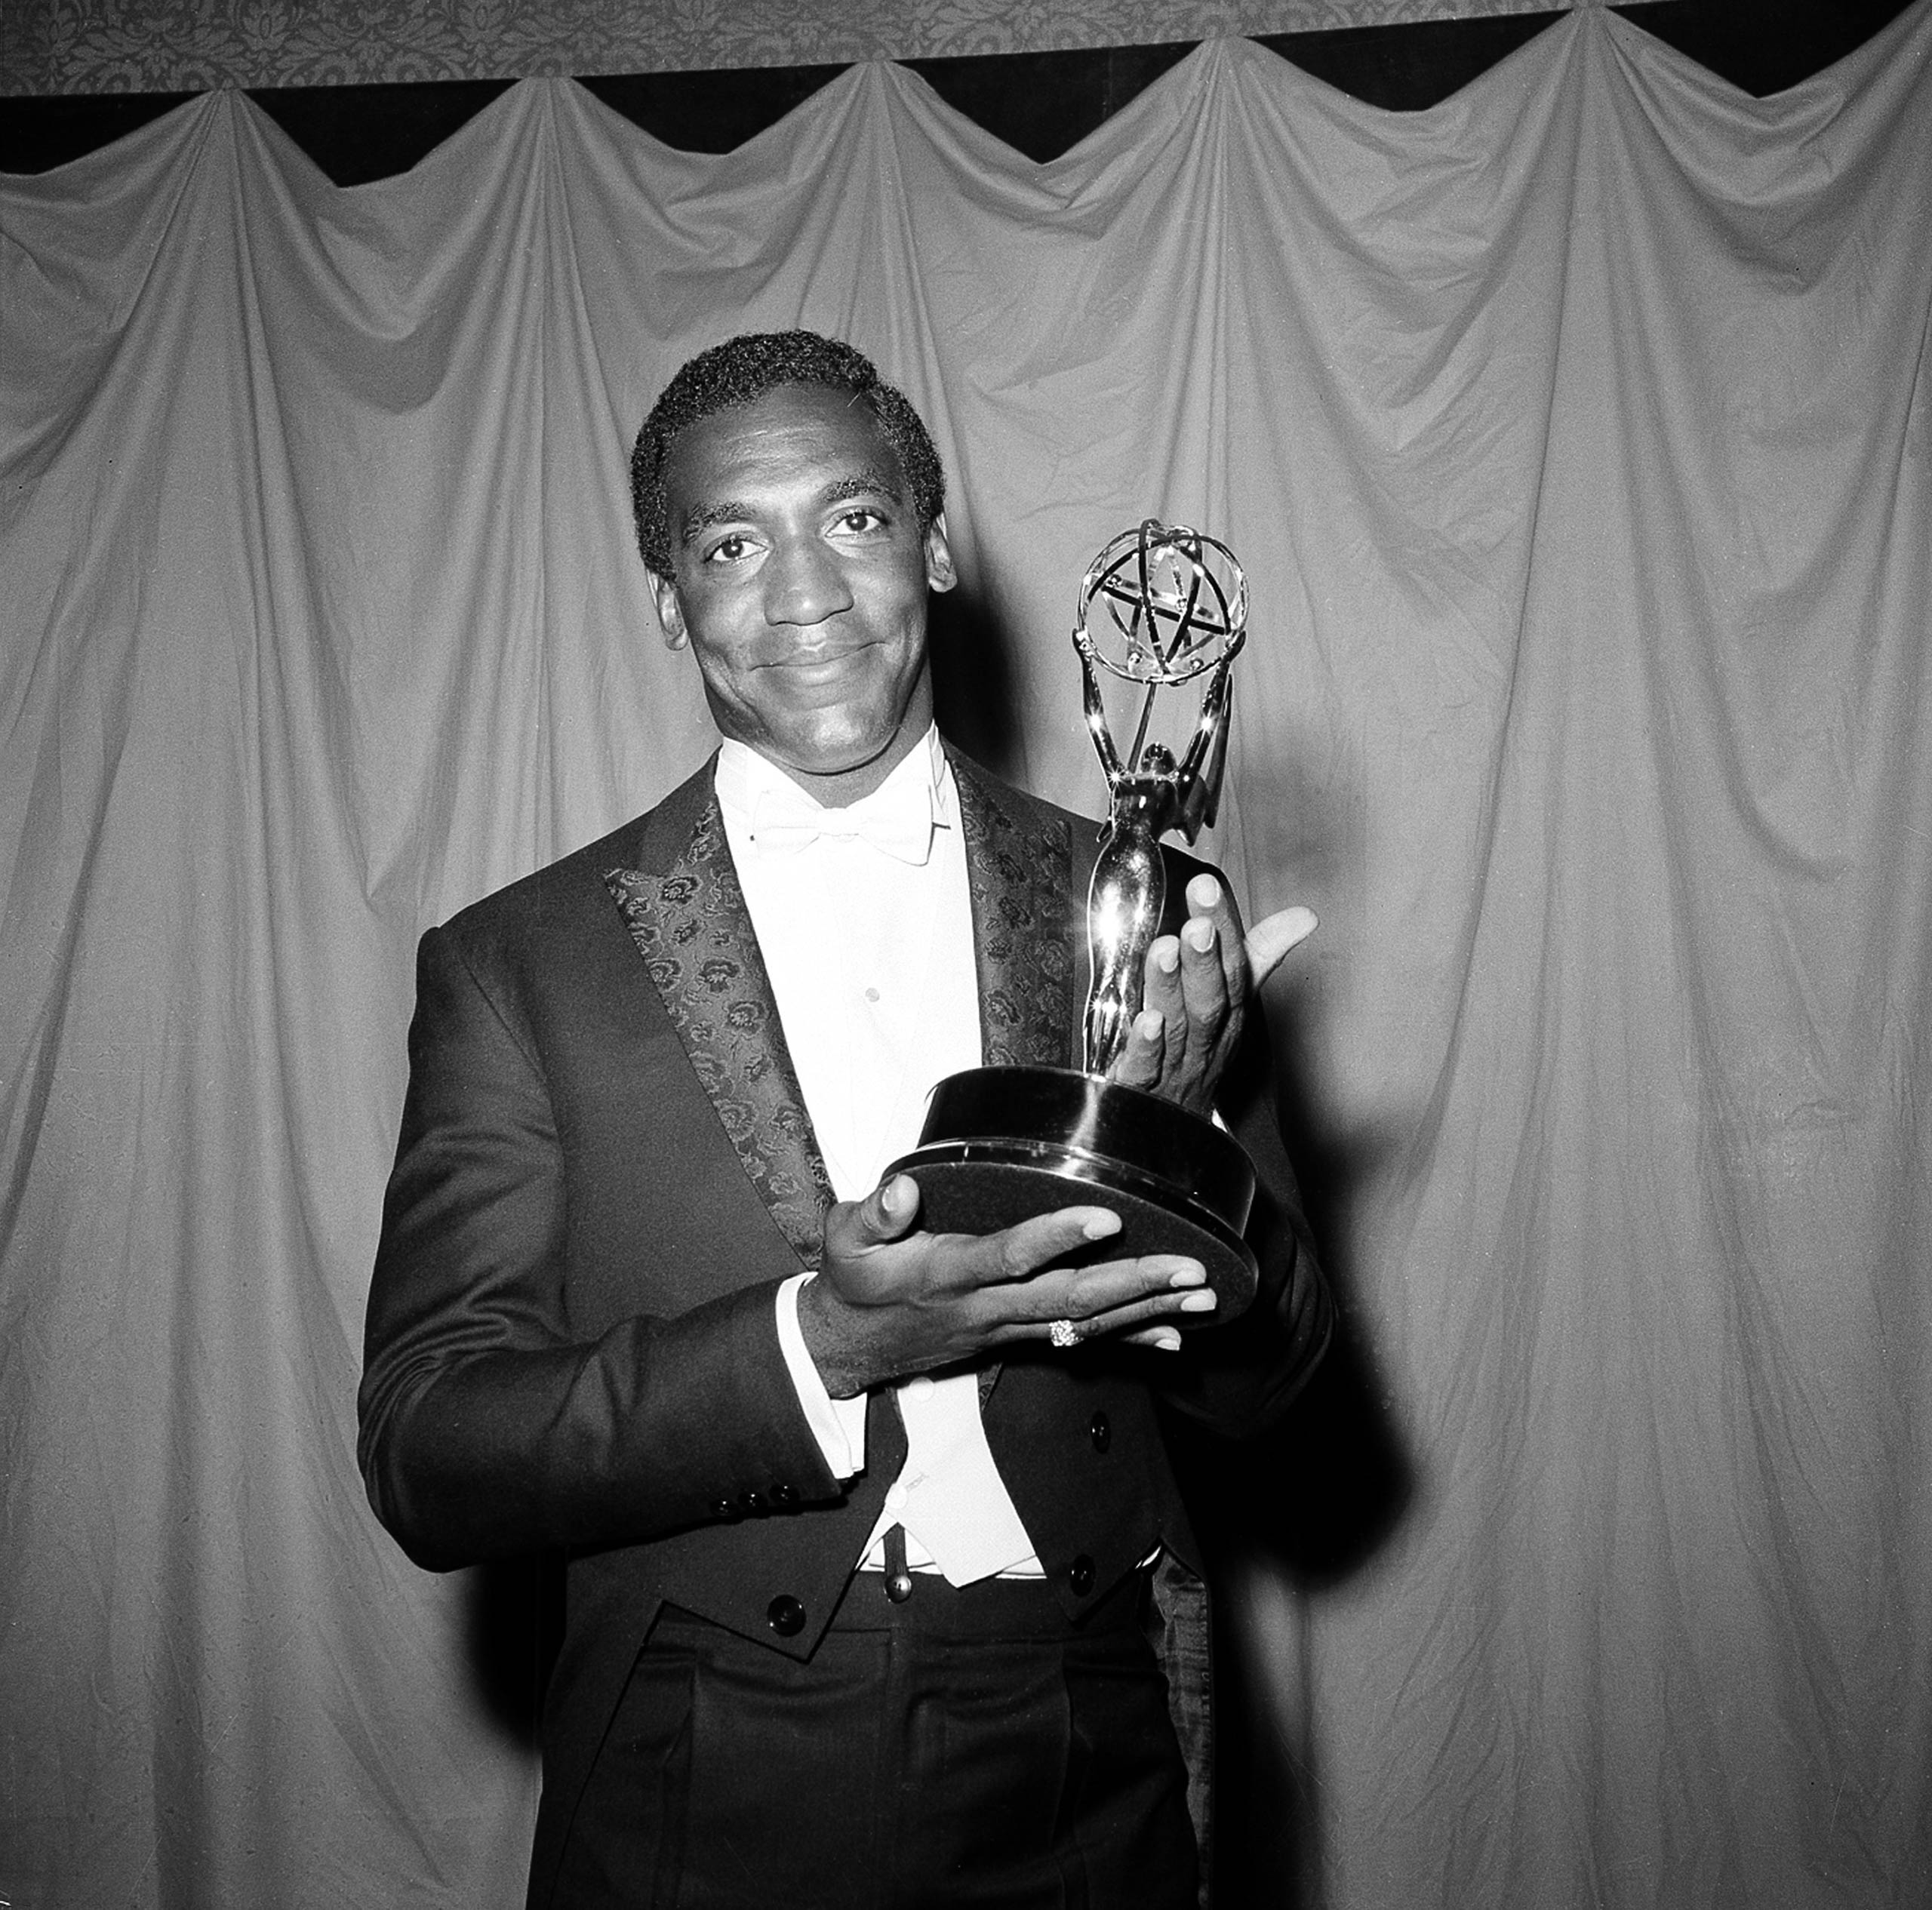 Bill Cosby poses with his Emmy for his role in I Spy at the Primetime Emmy Awards in New York City in 1966.